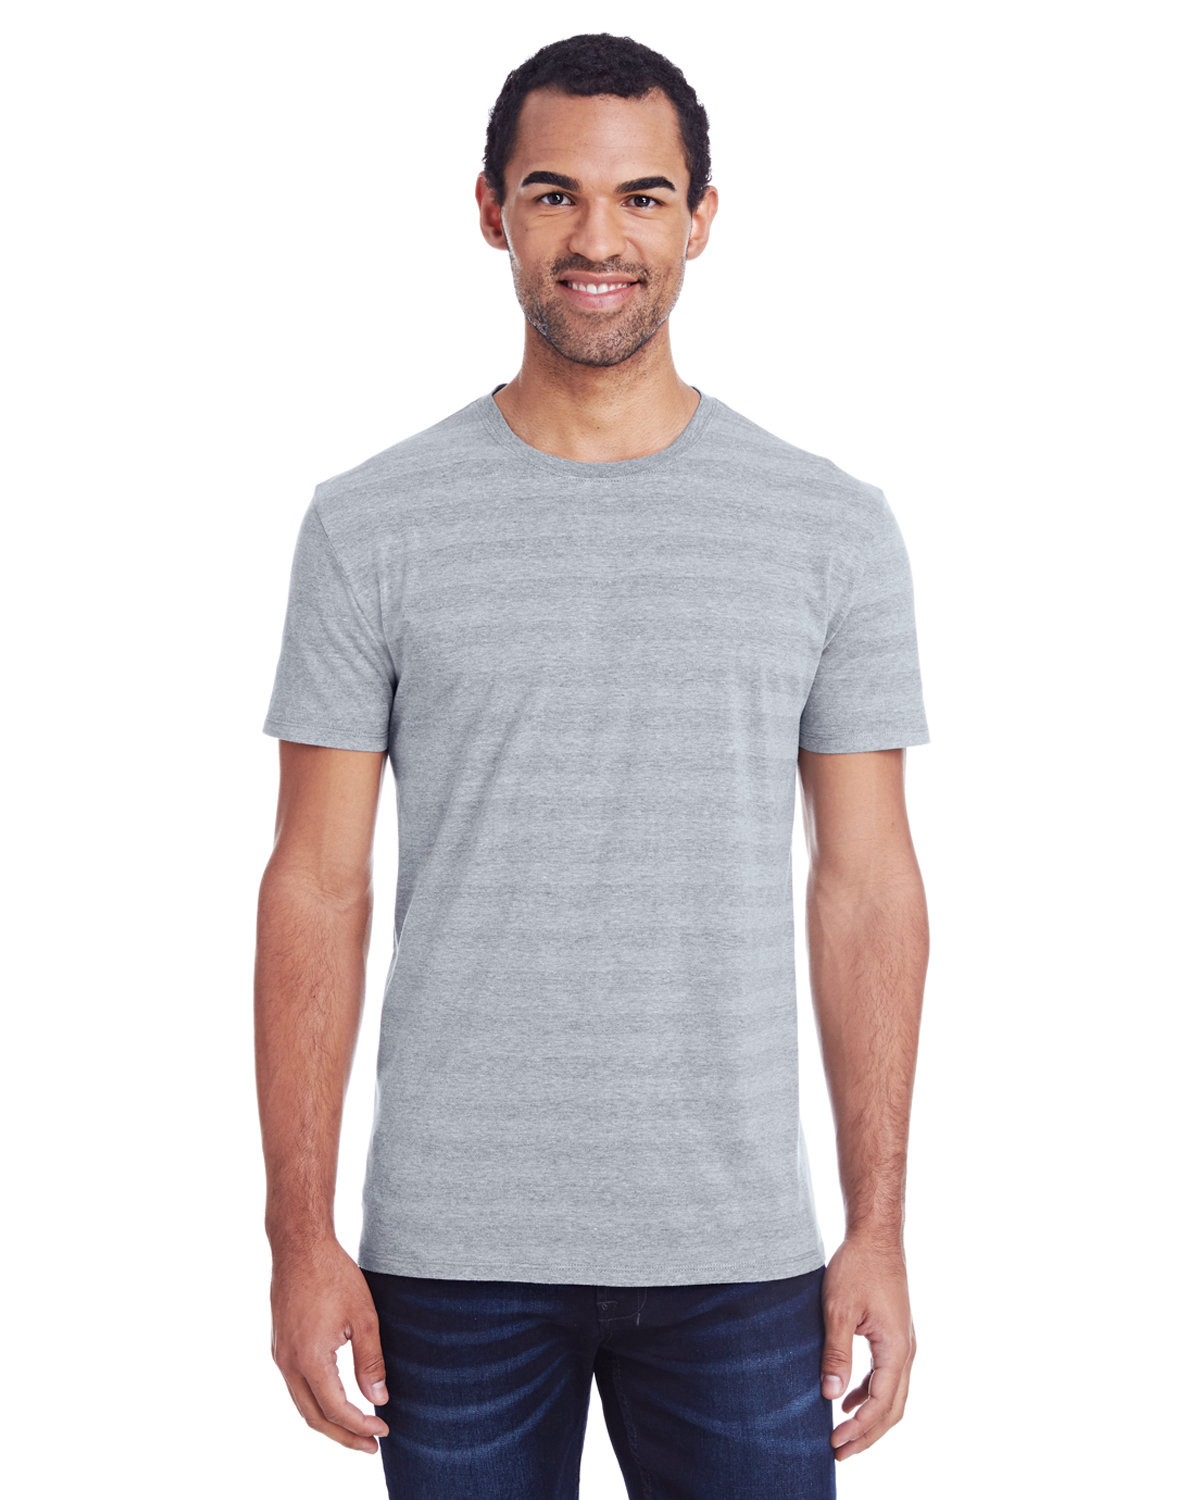 Threadfast Apparel Men's Invisible Stripe Short-Sleeve T-Shirt HTH GRY INV STRP